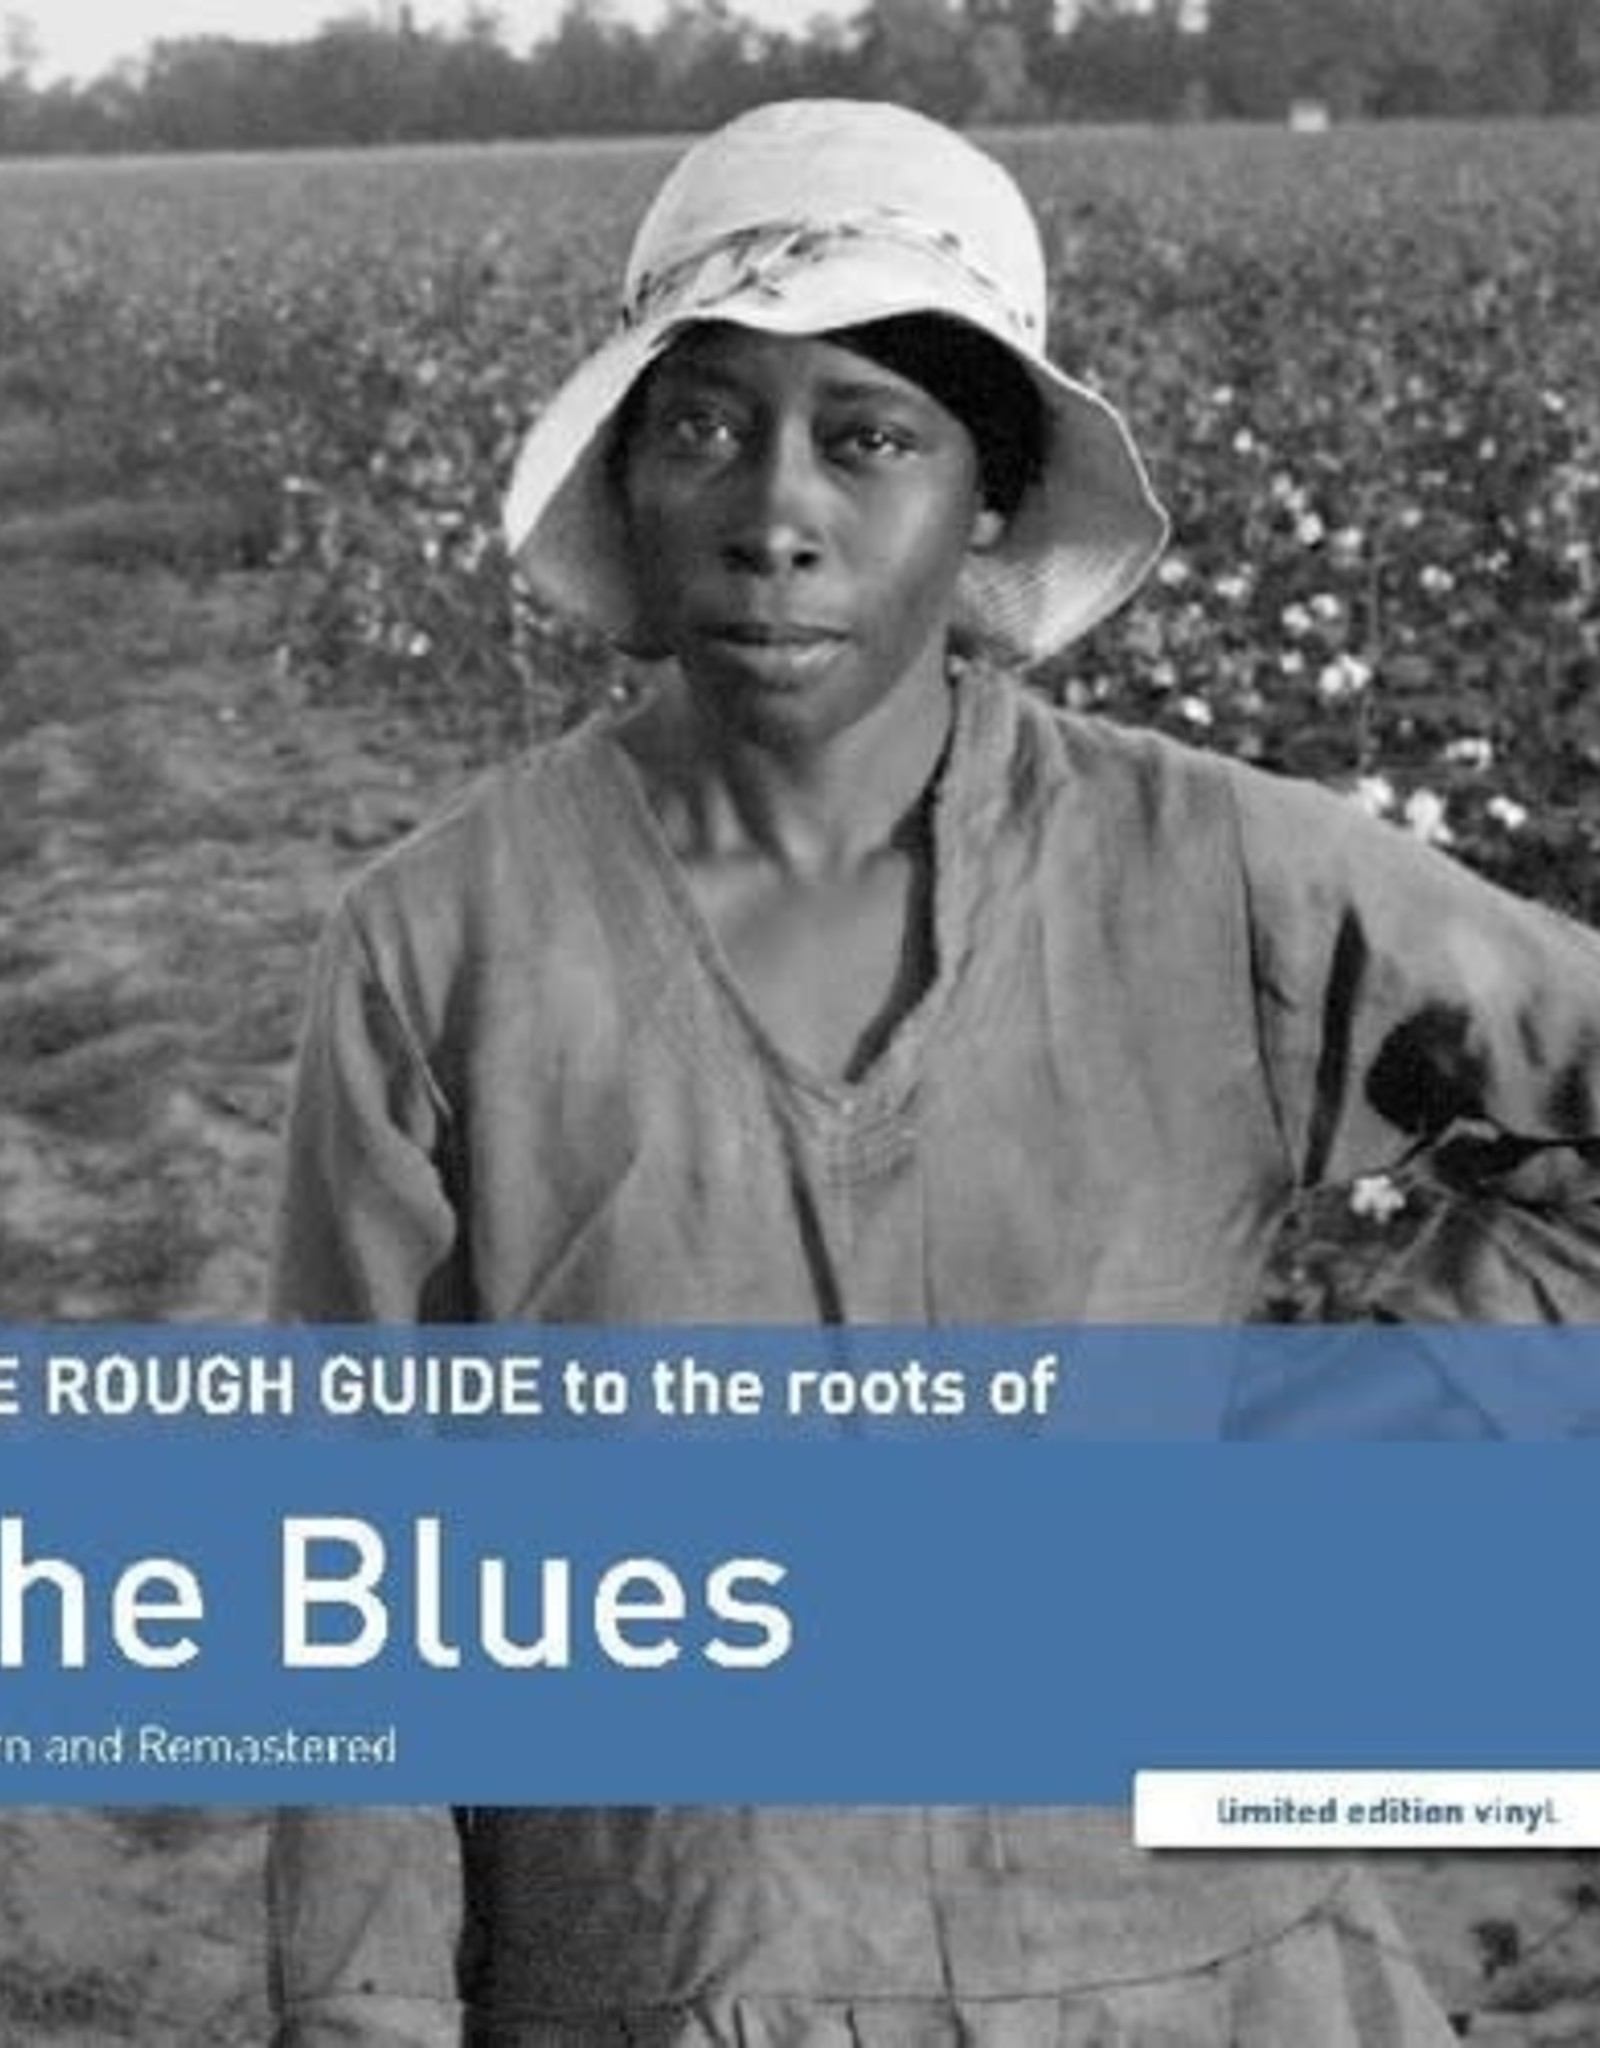 Rough Guide To The Roots Of The Blues